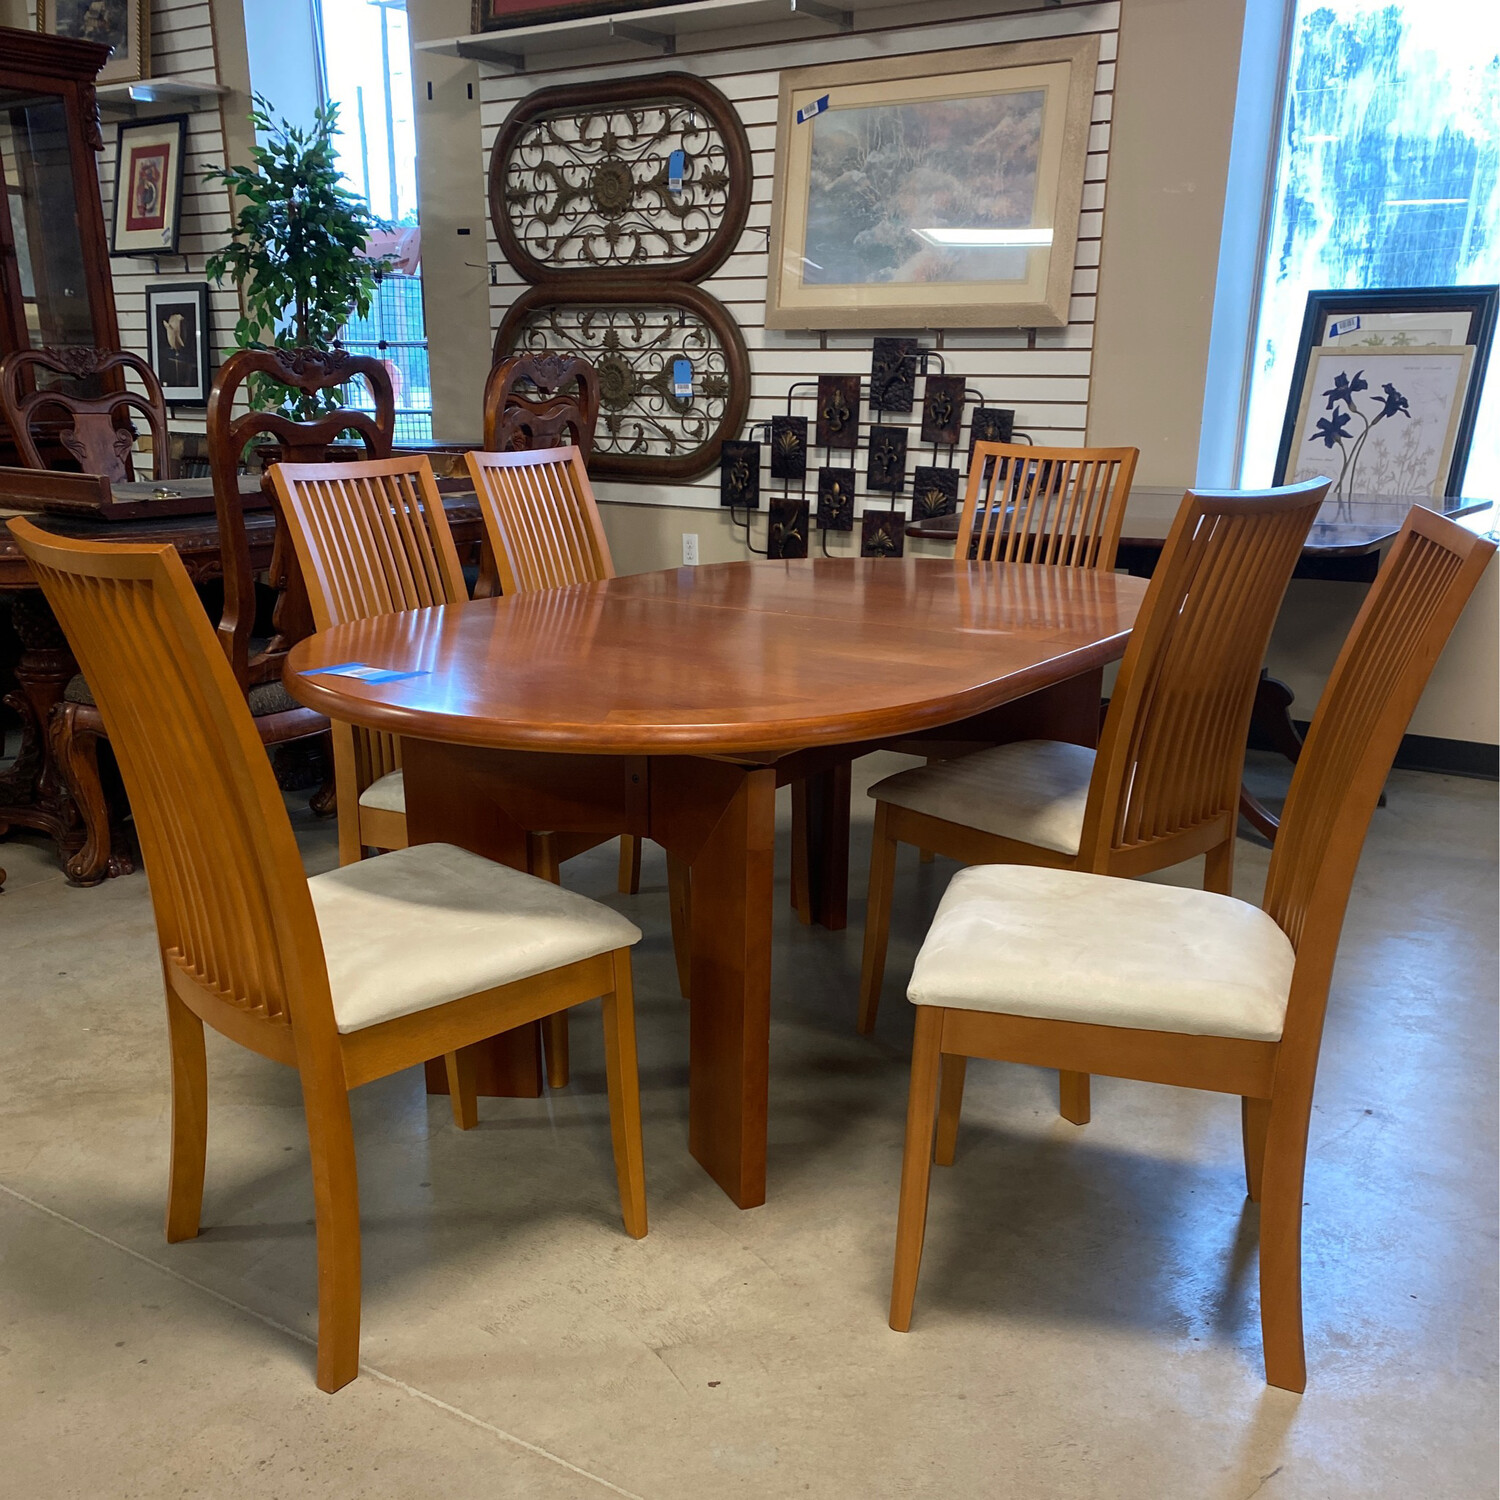 MED. BROWN DINING TABLE 6 CHAIRS/2 LEAVES